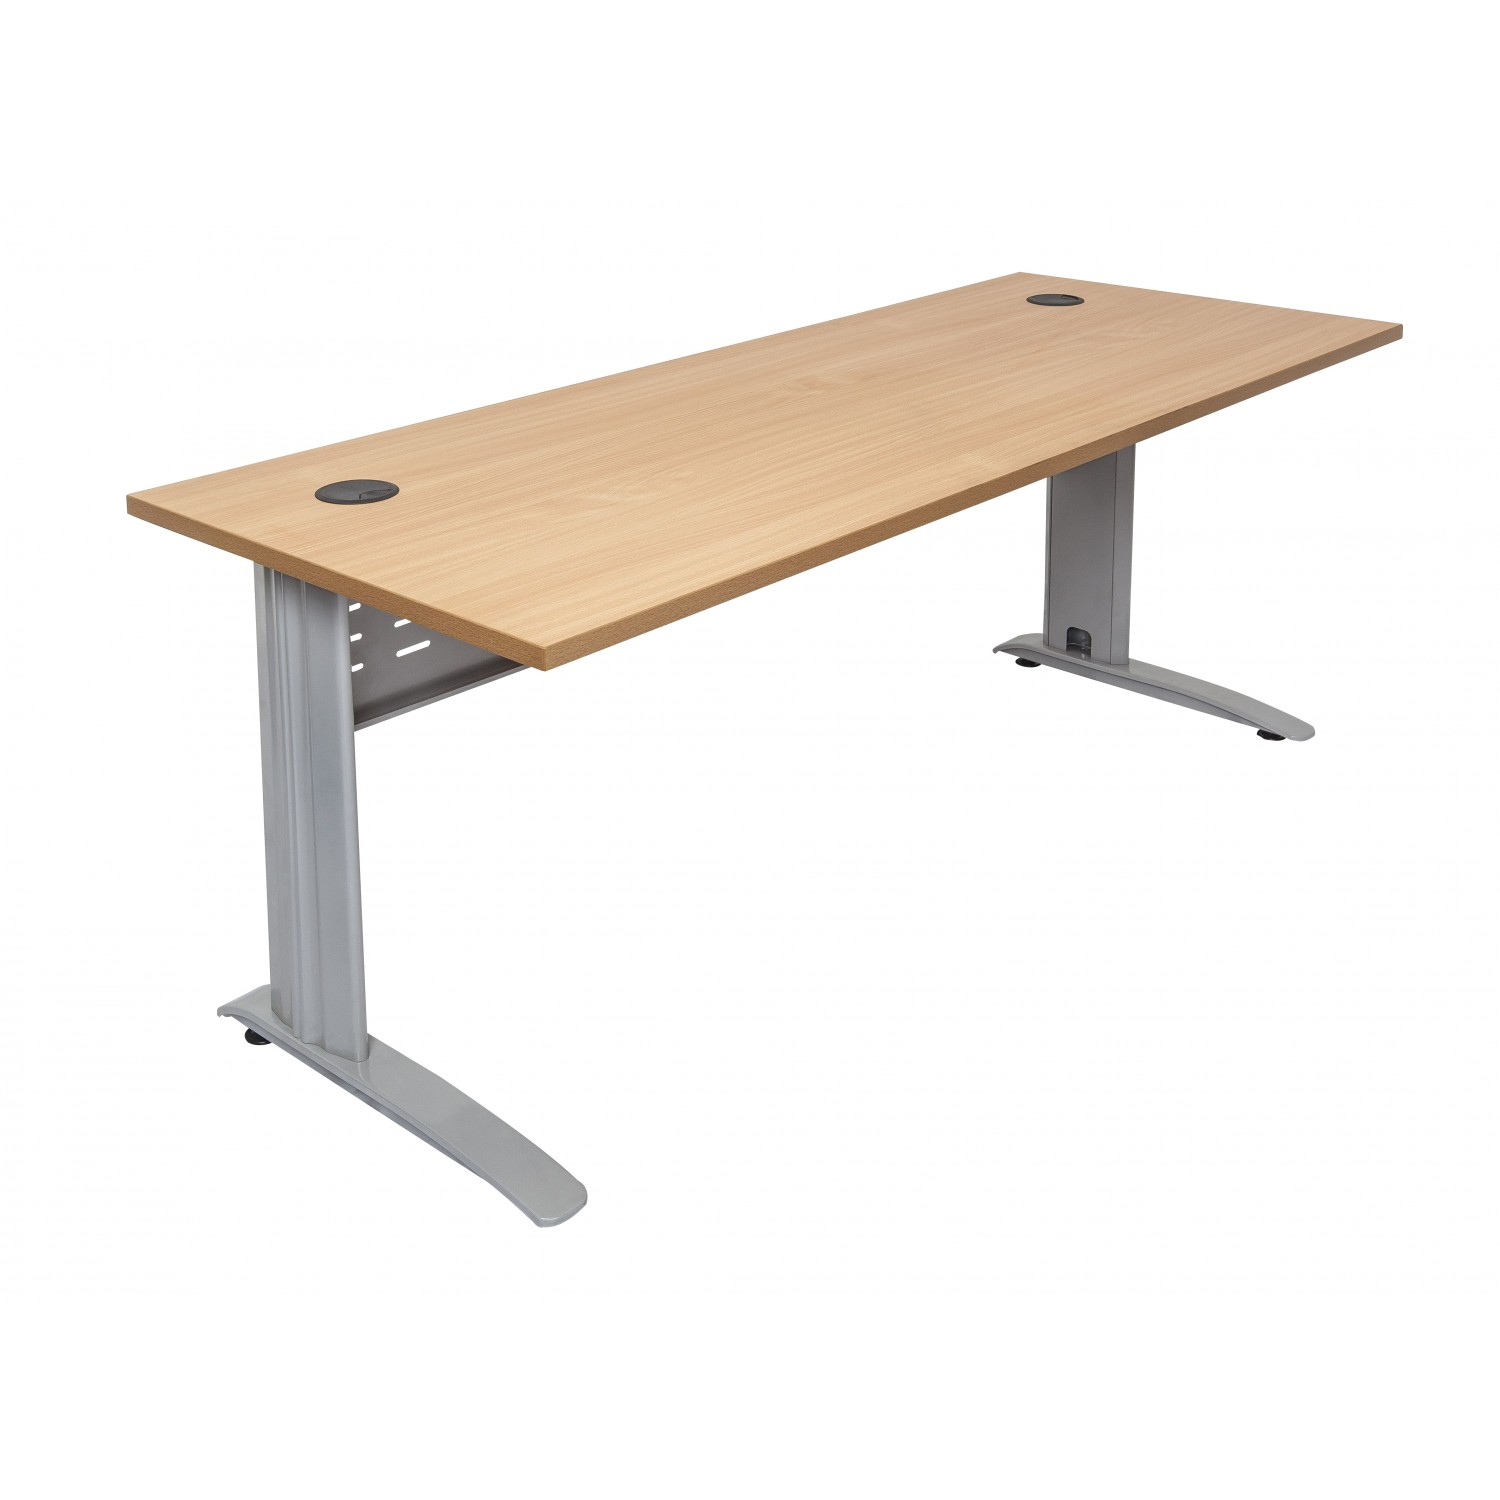 Metal Leg Desk Rapid Worker Metal Leg Desk Office Furniture Since 1990